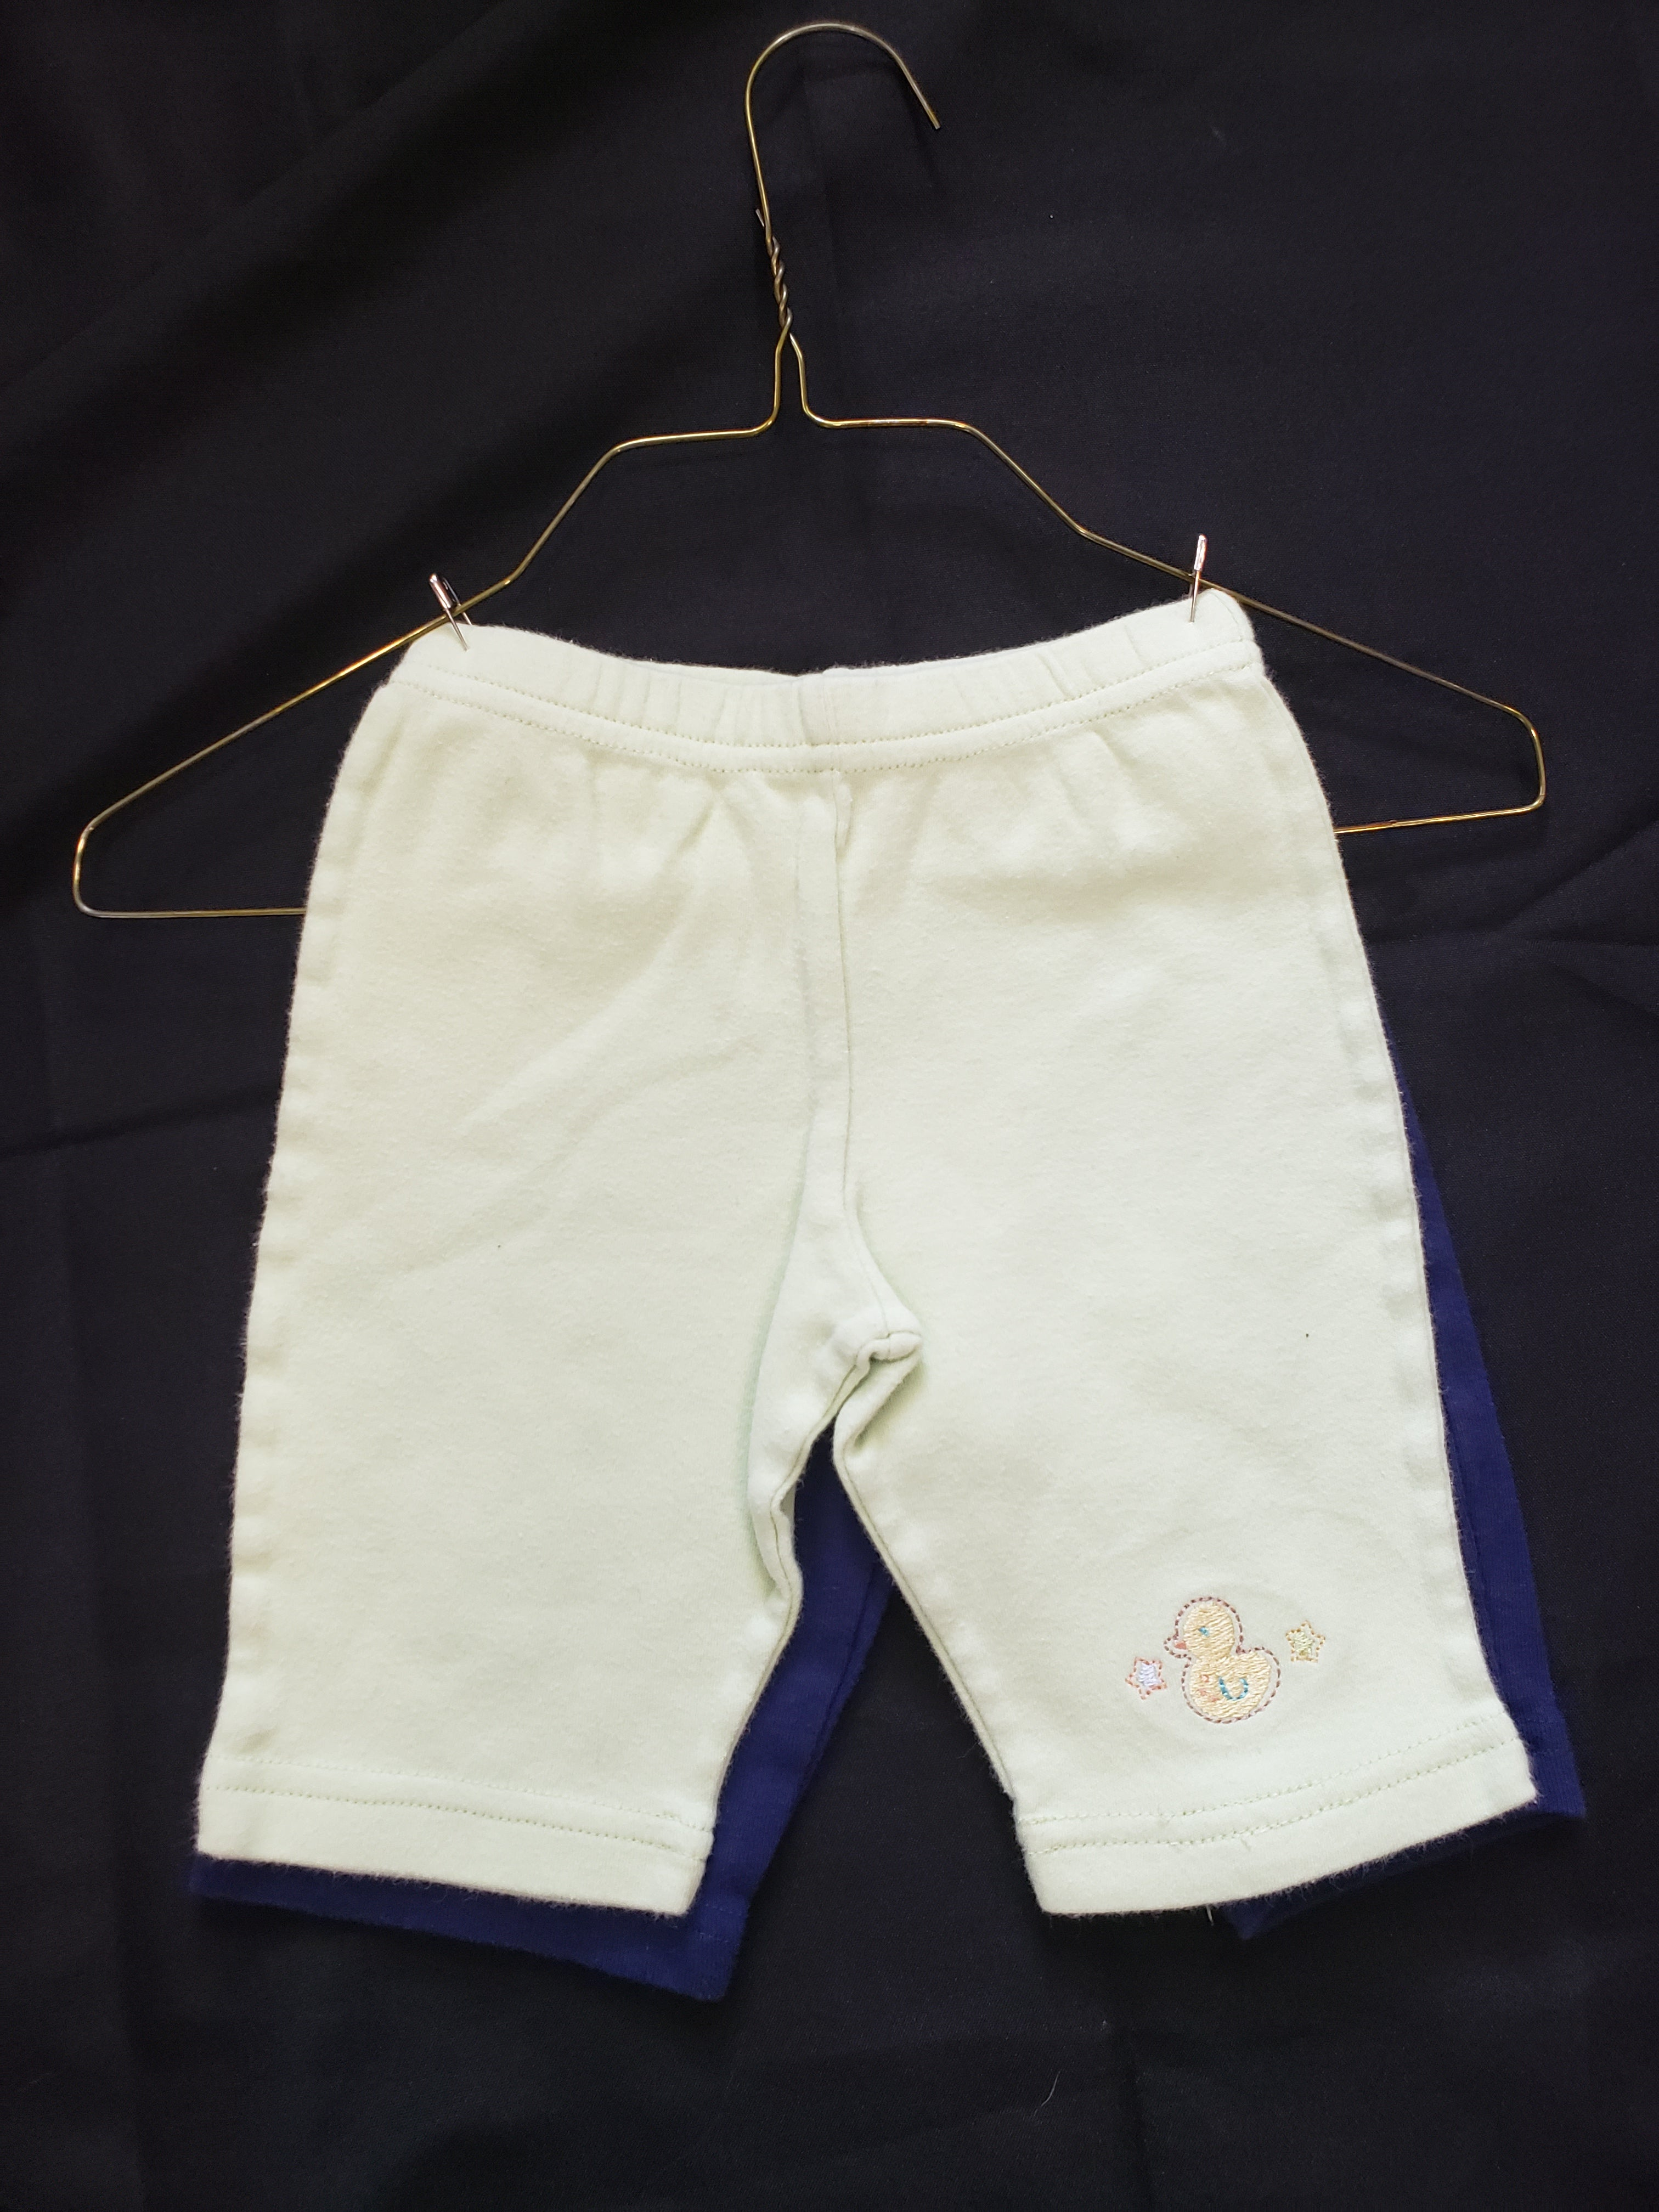 2 pairs of size 0-3mo pants. 1 yellow and 1 blue